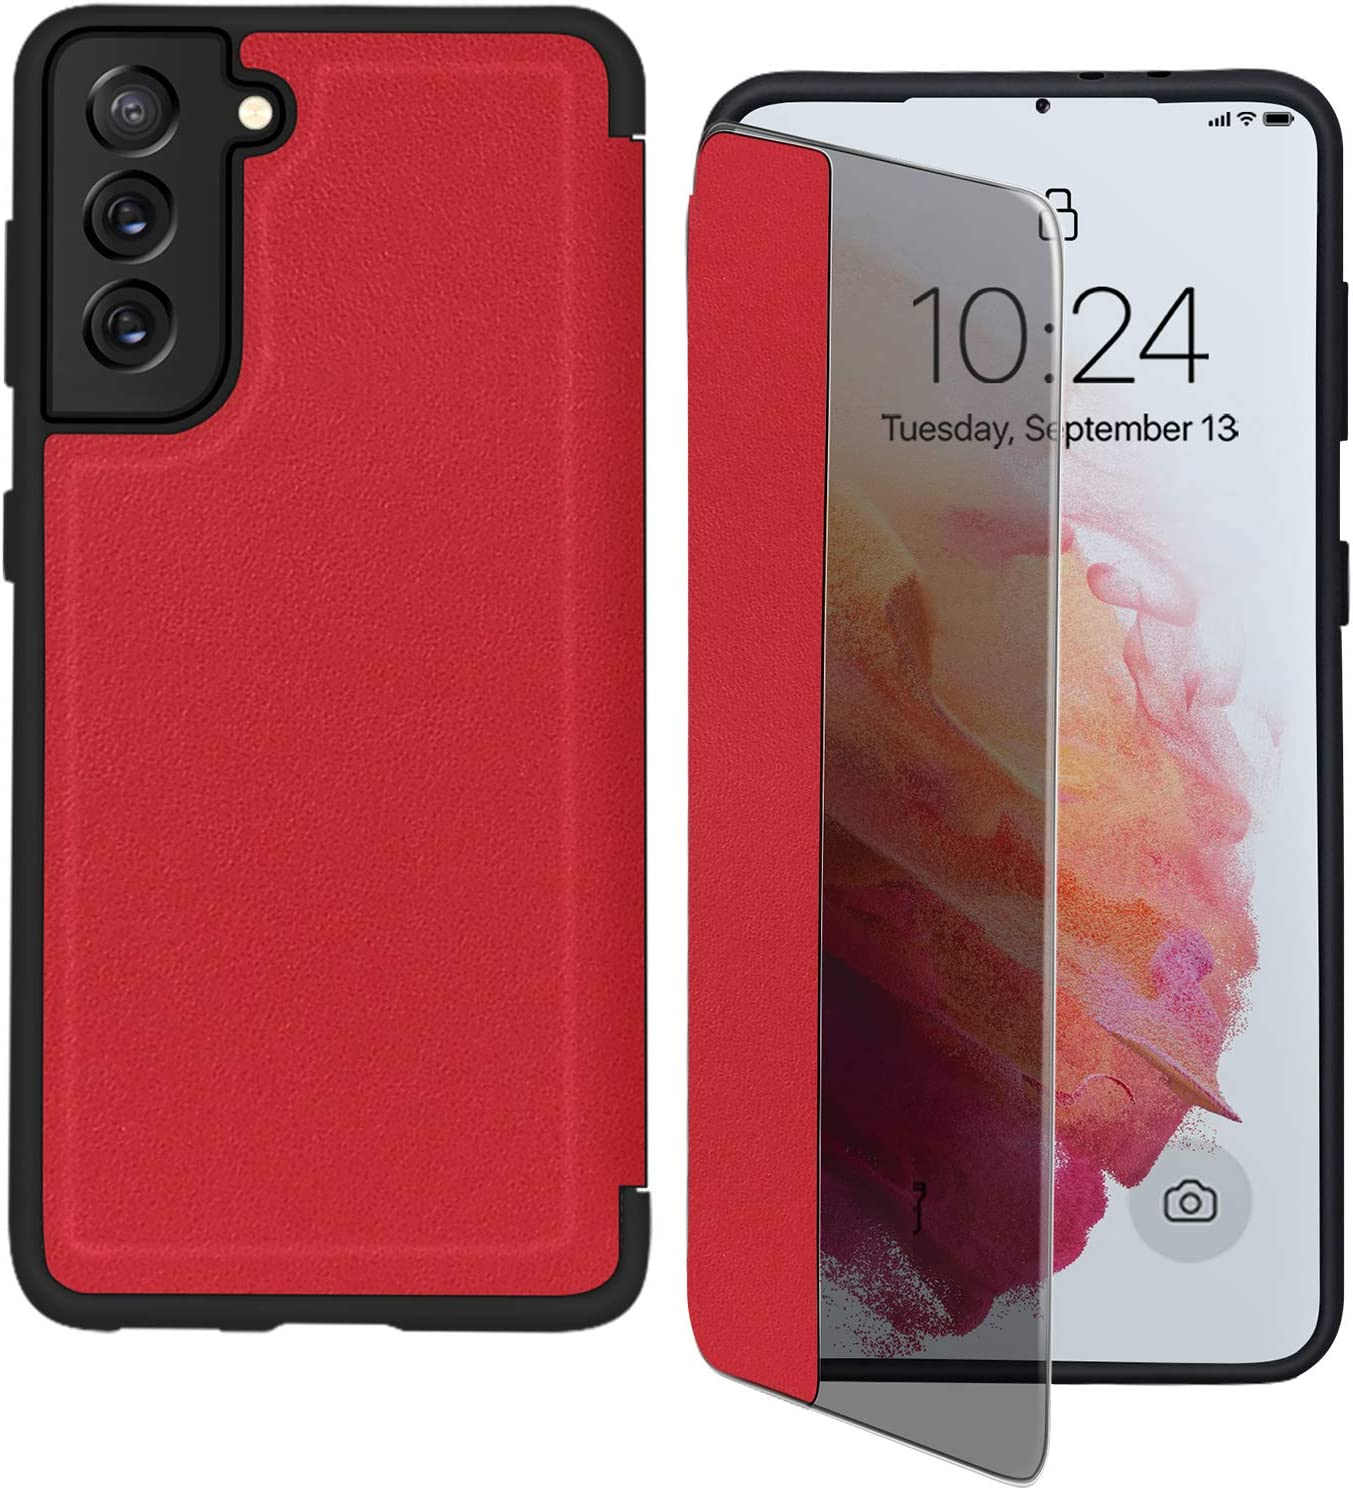 """FYY Phone Case for Samsung Galaxy S21 5G 6.2"""", Magnetic Slim Flip Case Drop Protection Shockproof Protective Cover with Window View Function for Samsung Galaxy S21 6.2 inch Red"""